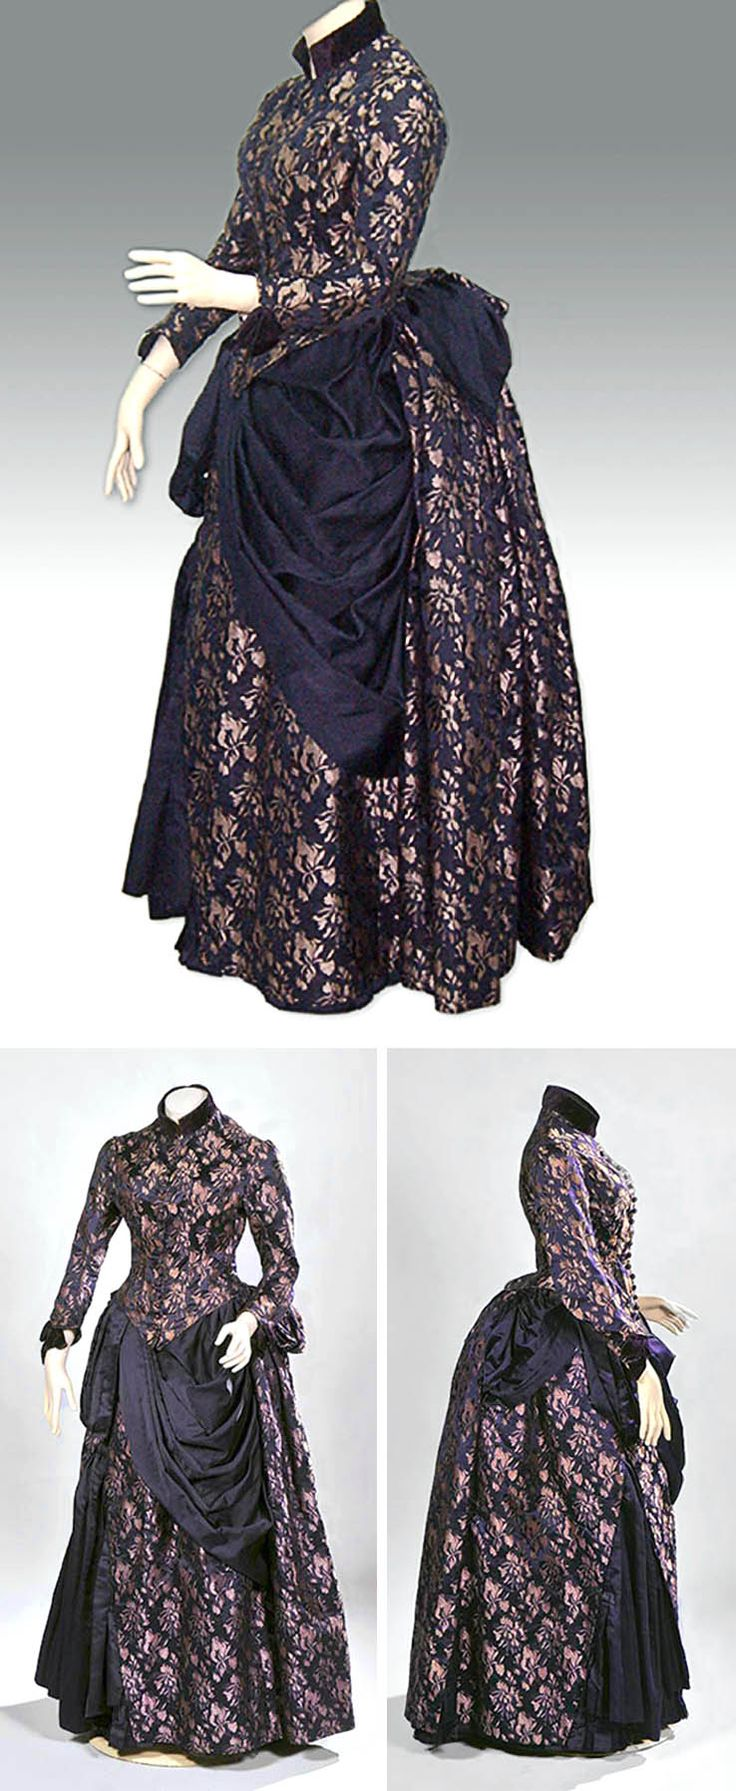 Dress ca. 1885. Silk brocade in purple and lilac. High purple velvet collar and trim at cuffs. Purple satin drapery on skirt. National Historical Museum, Chile